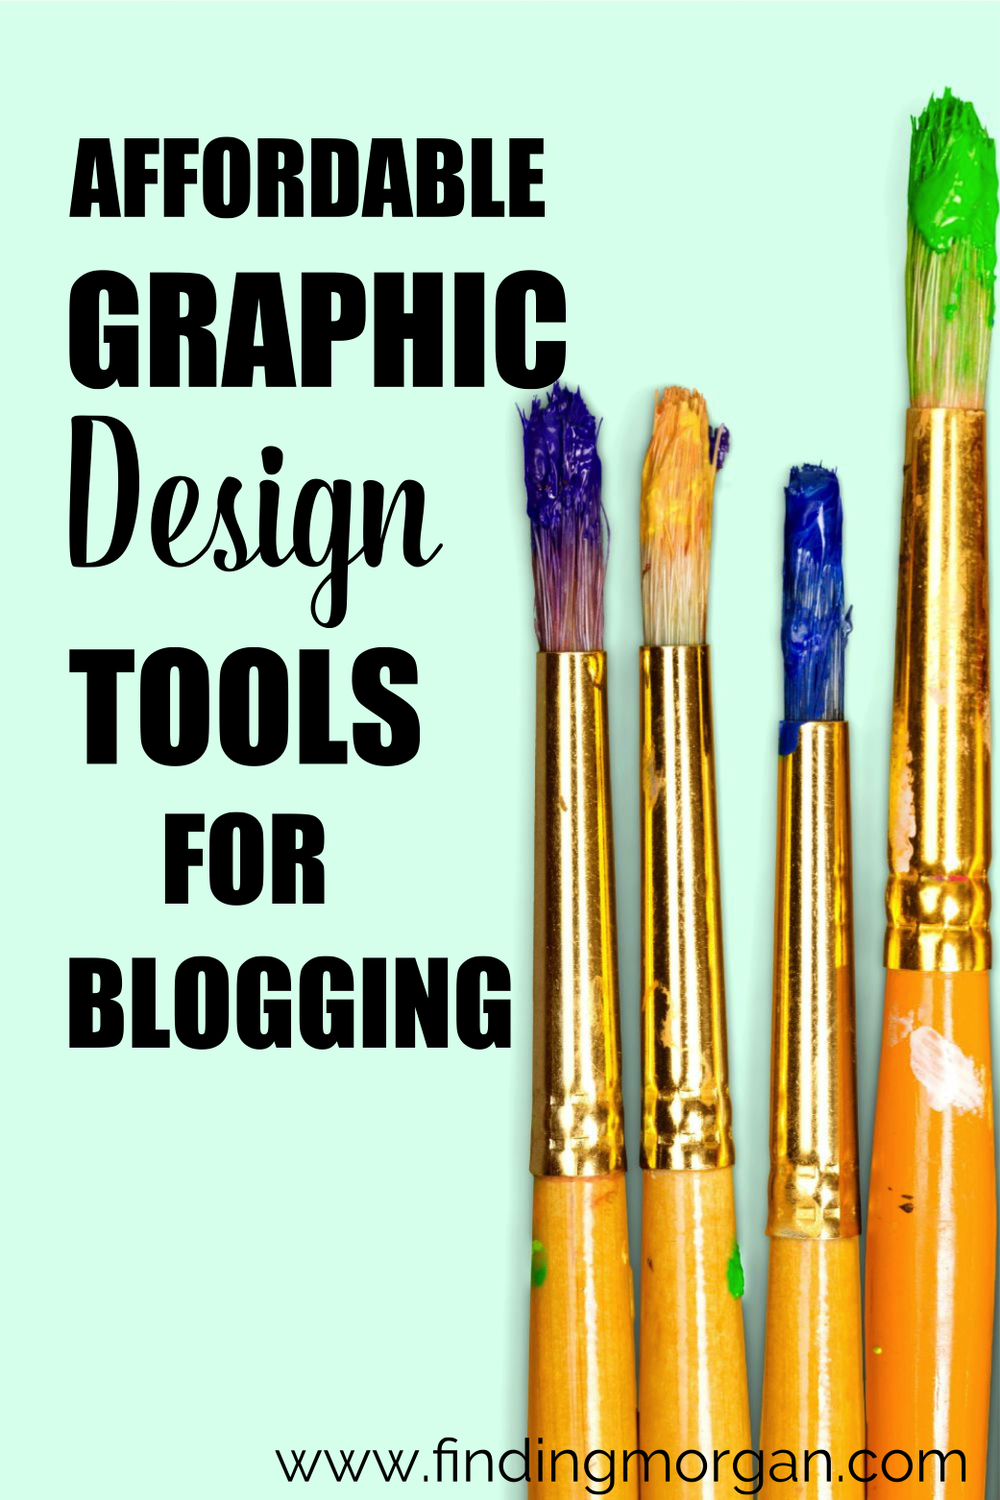 blog-graphic-tools